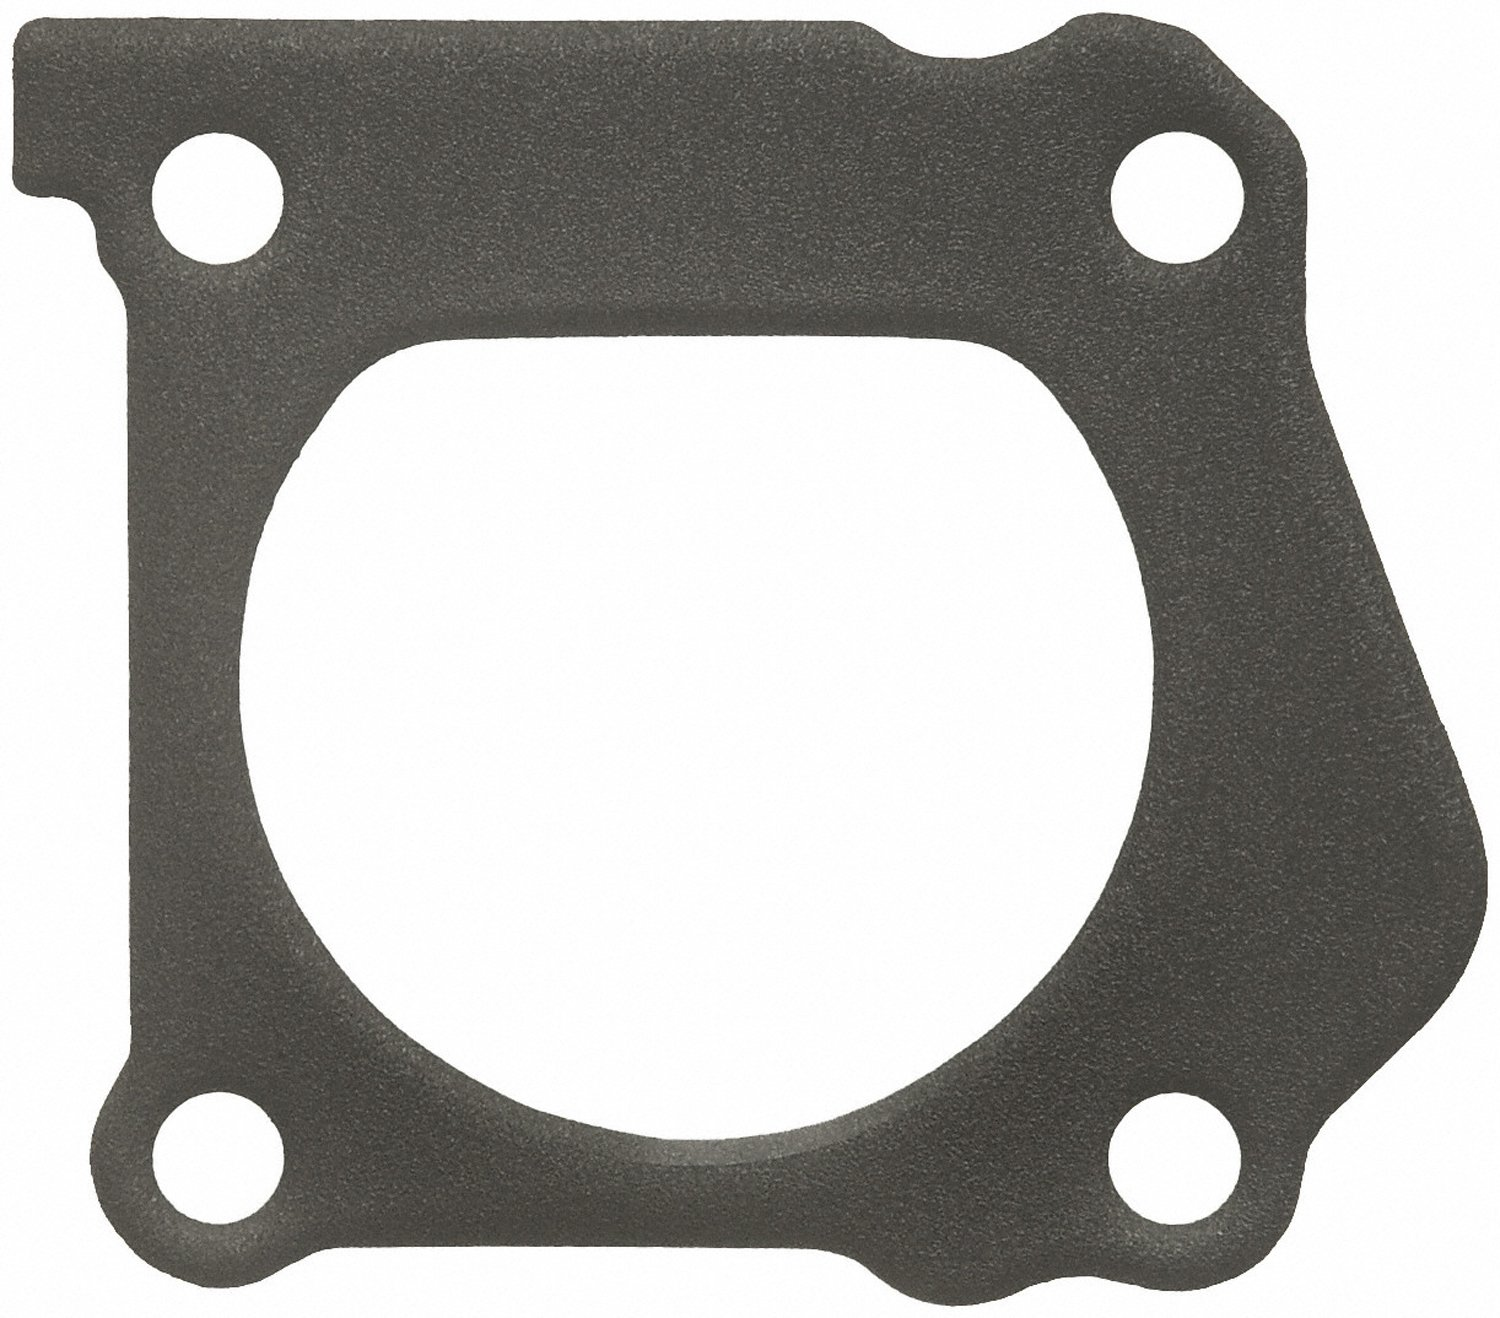 Fel-Pro 61038 Throttle Body Mounting Gasket